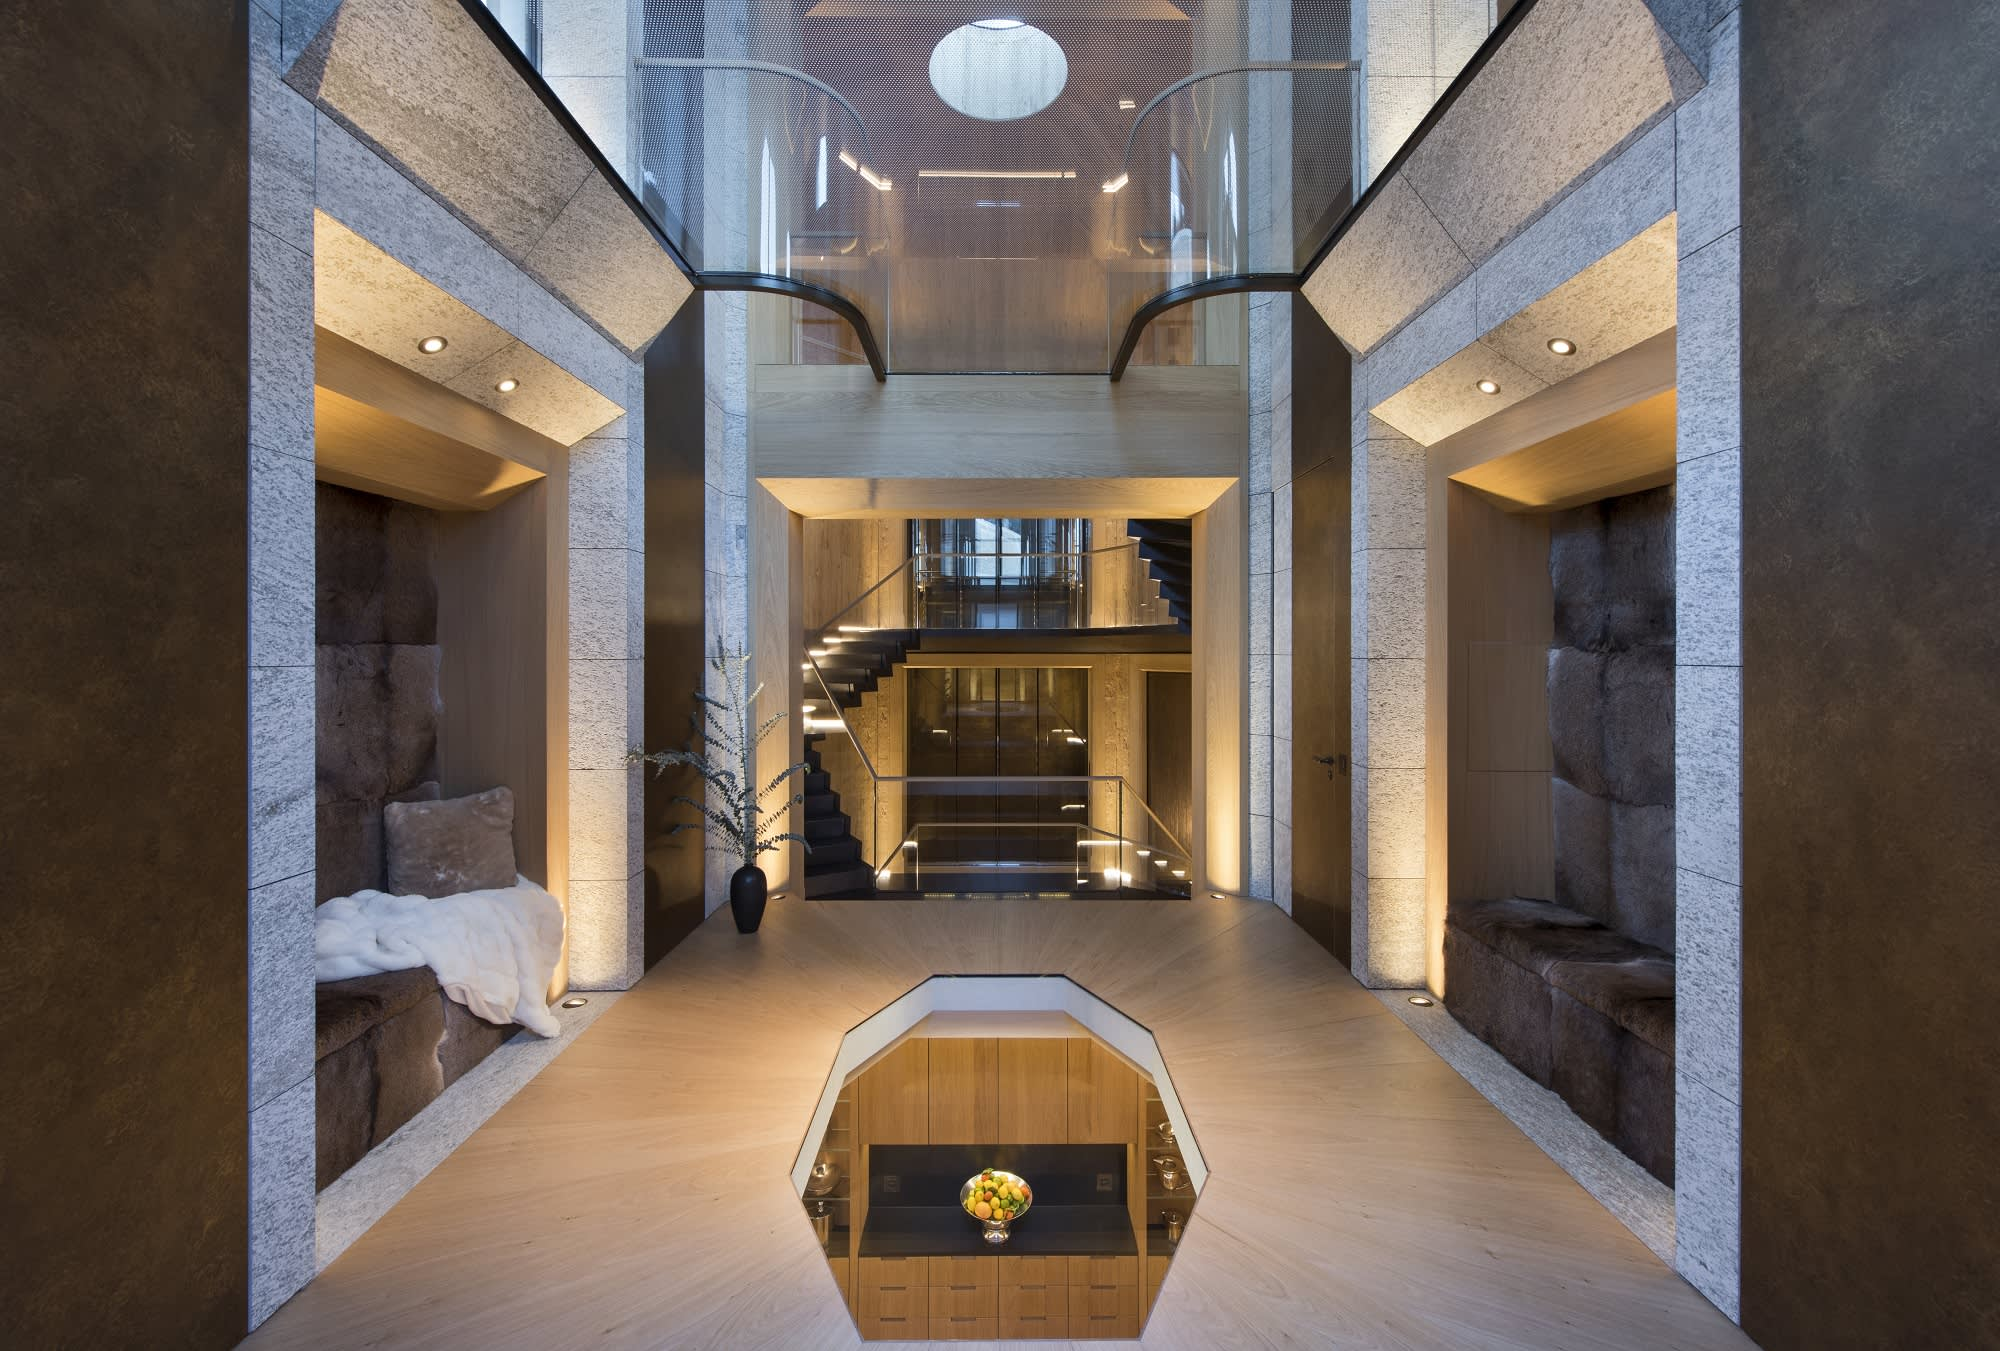 Most Expensive Home In Switzerland Is On The Market For 185 Million